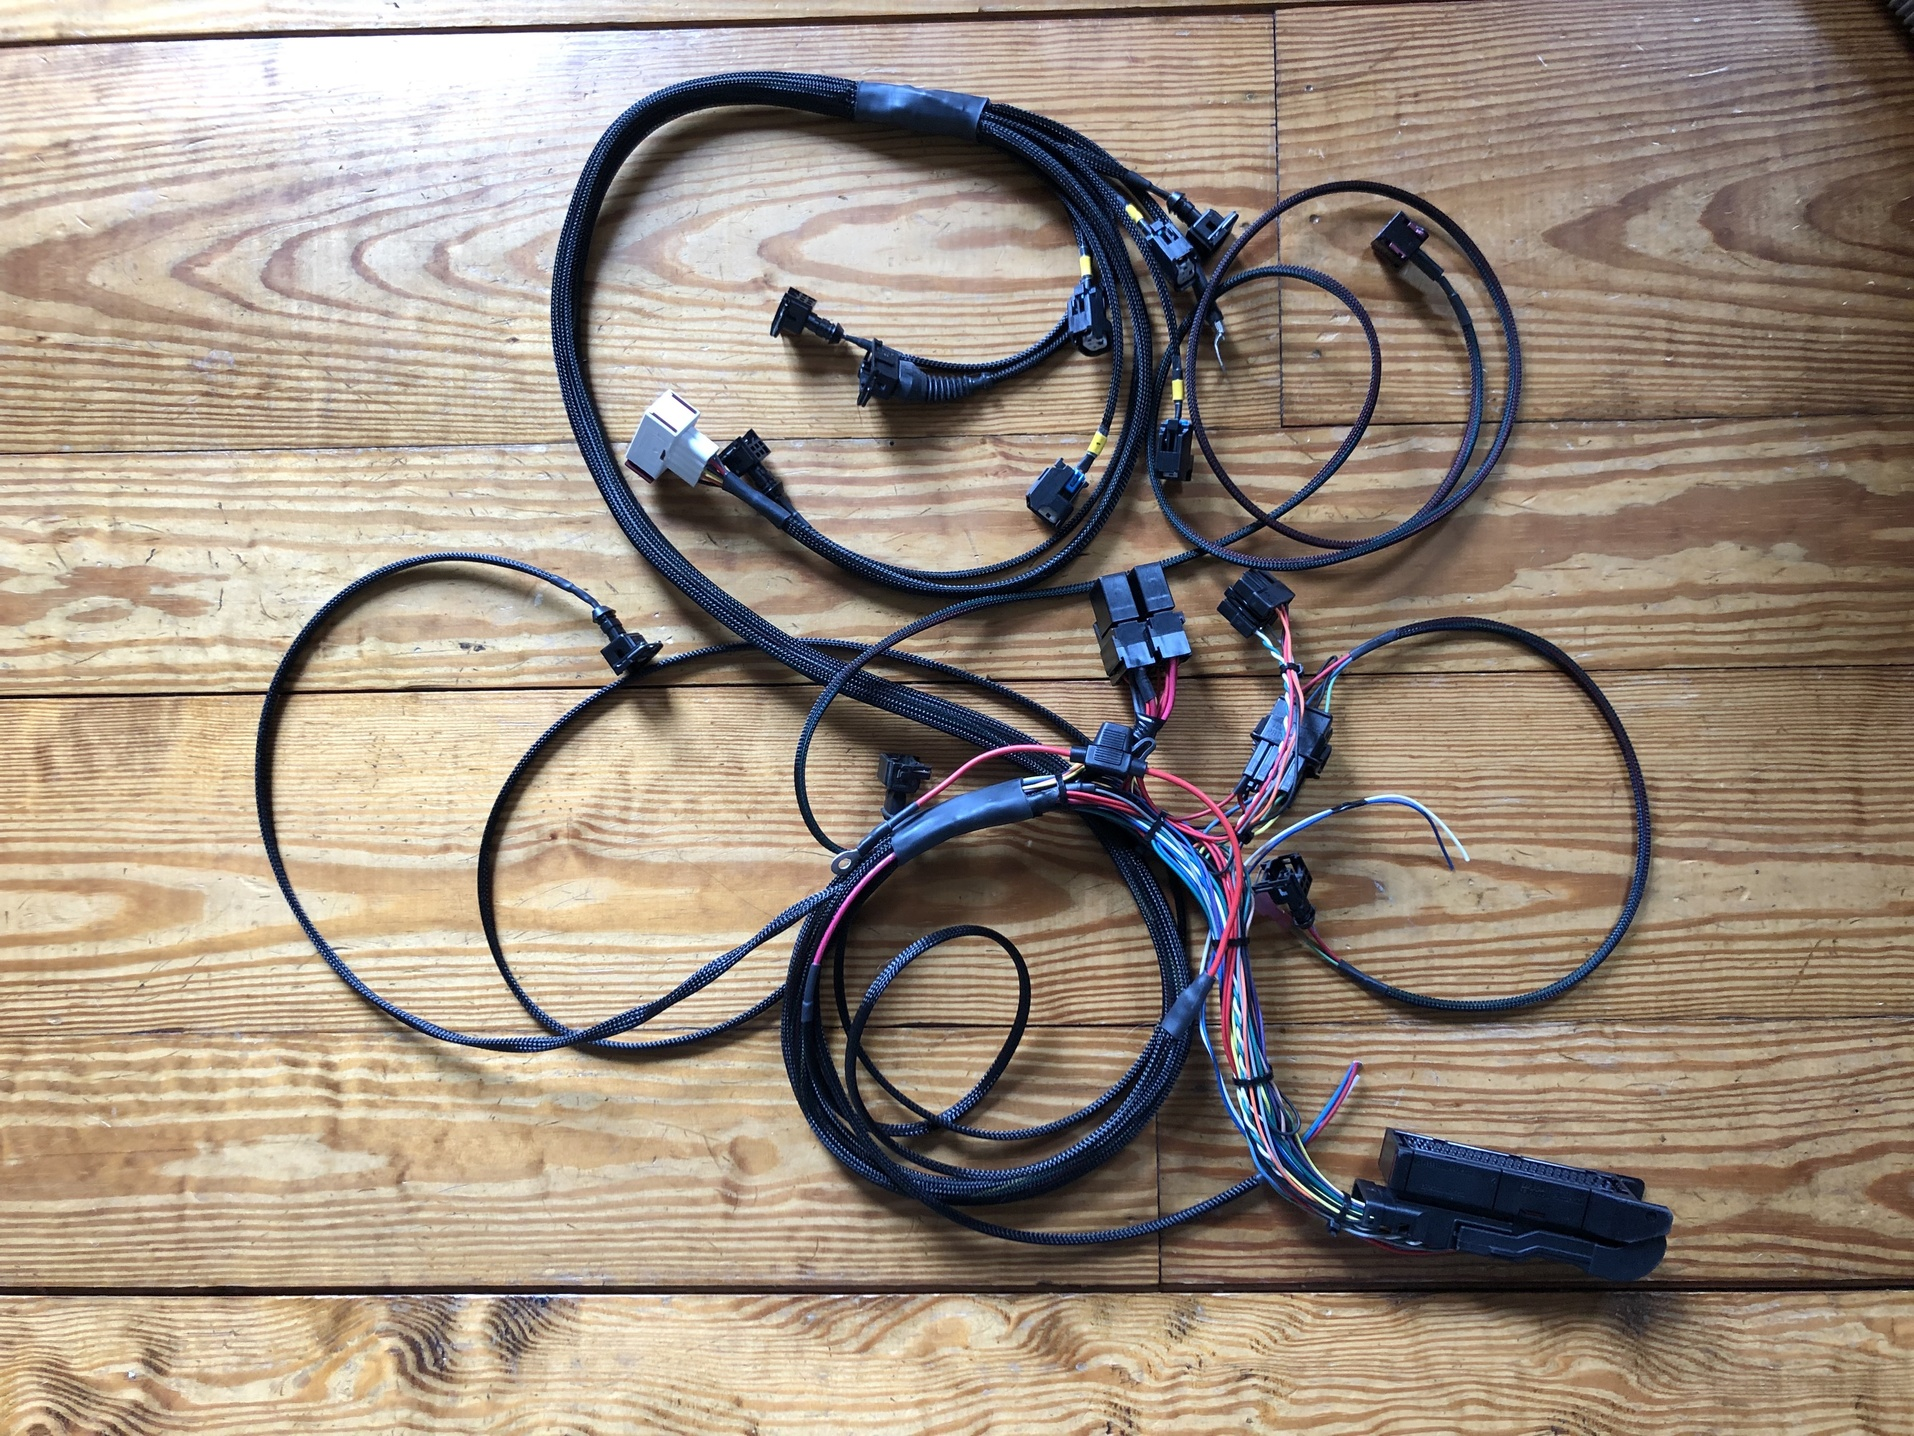 hight resolution of new trionic 5 wire harness